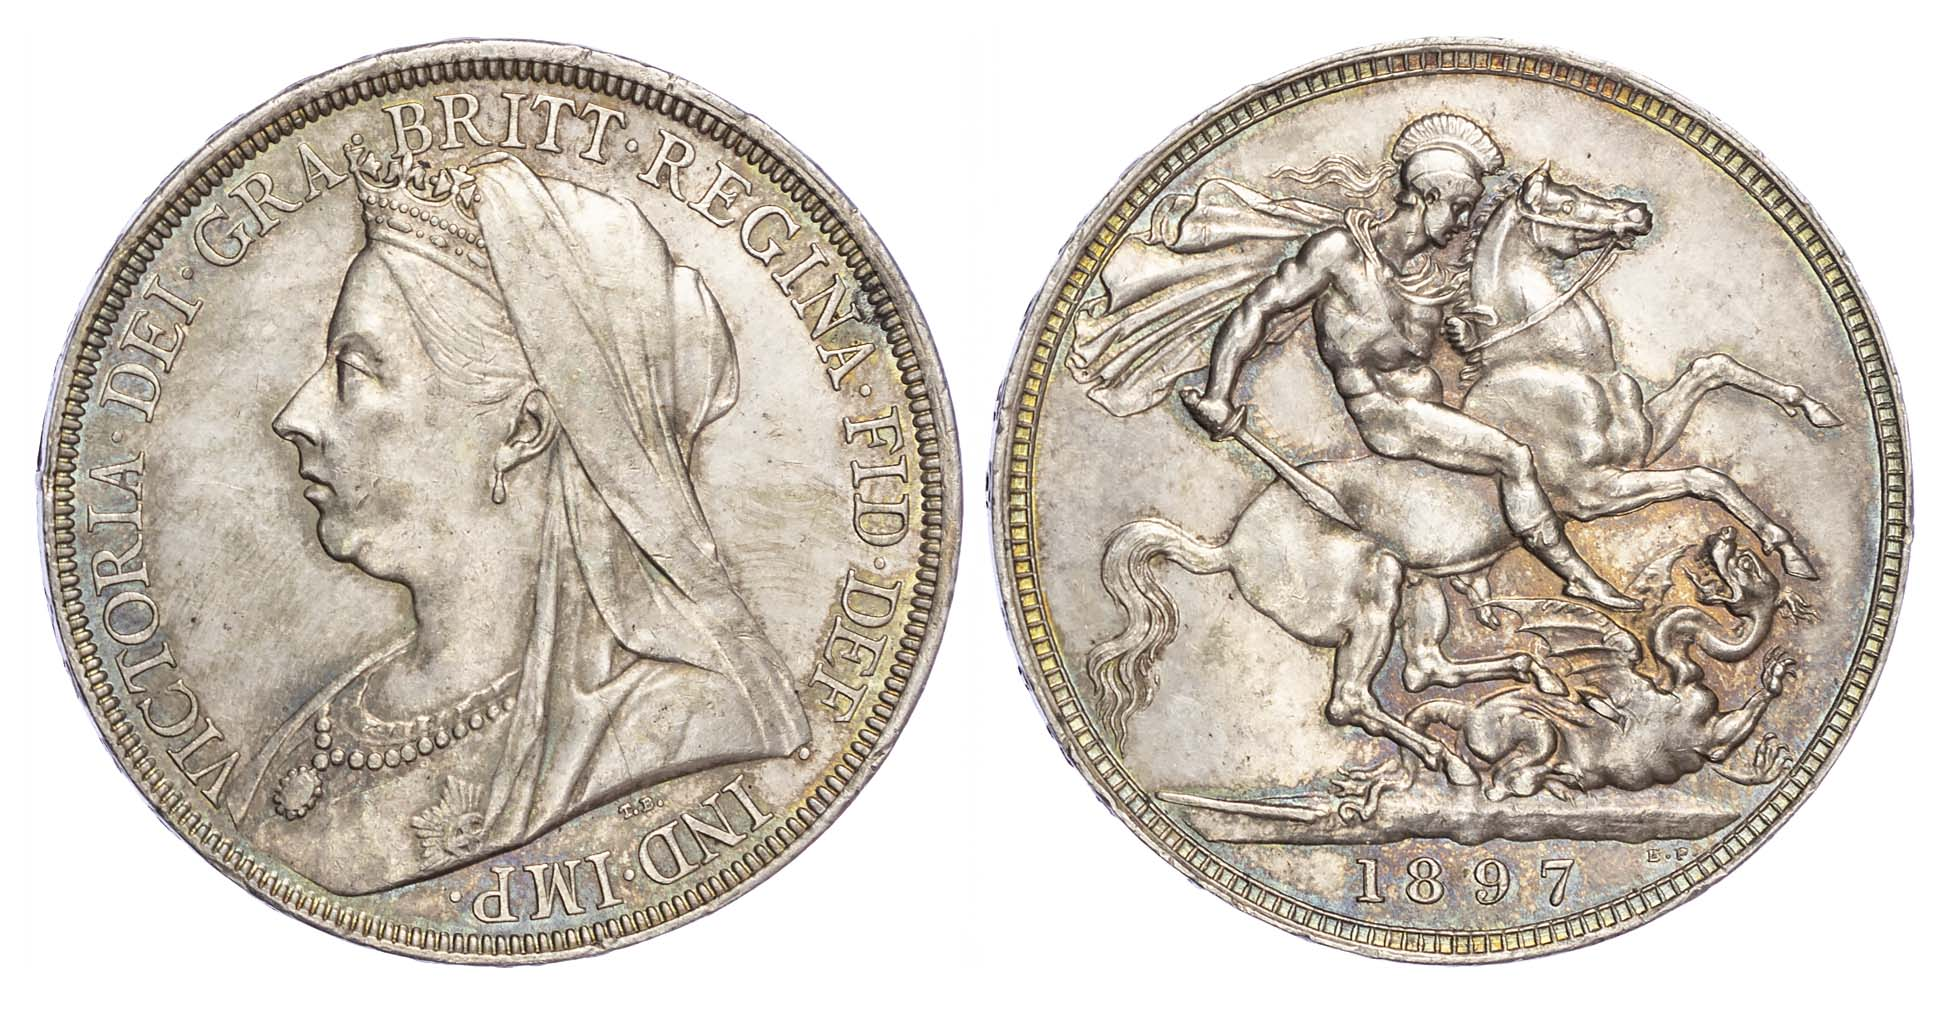 Victoria (1837-1901), 1897, Crown, LXI edge, old veiled bust